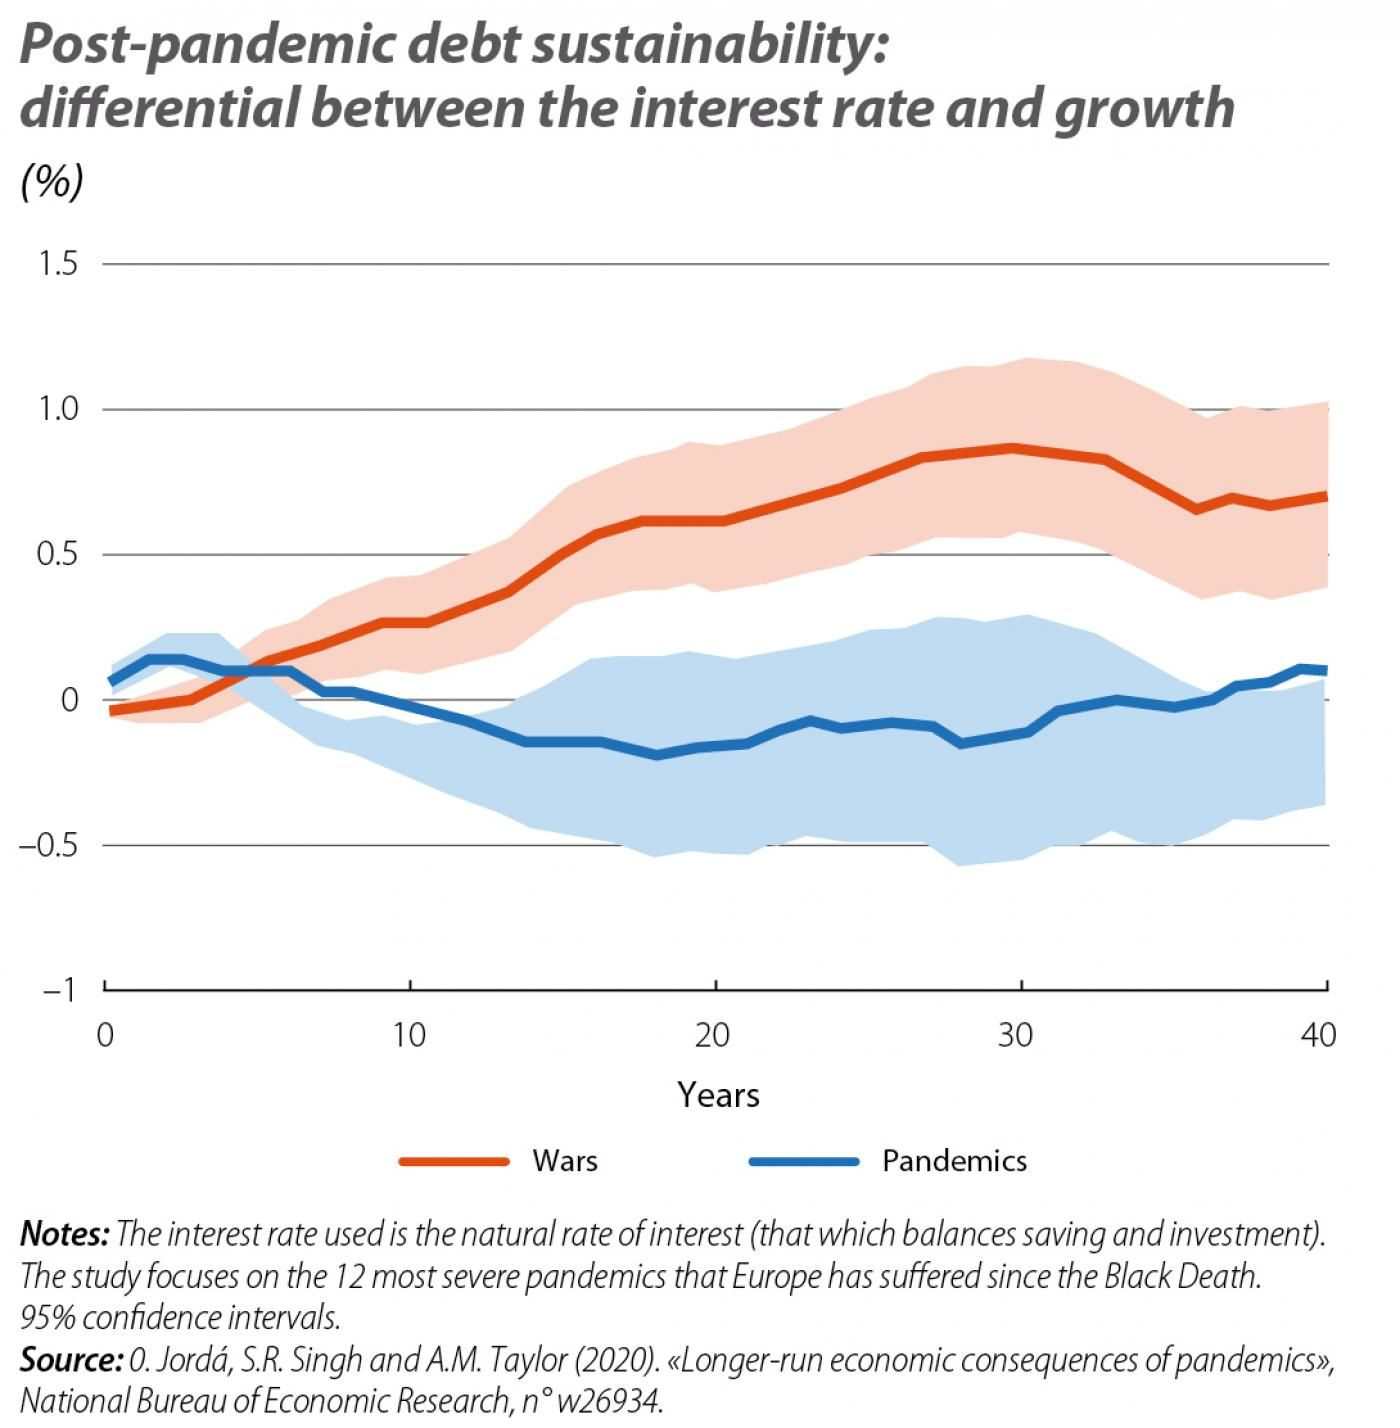 Post-pandemic debt sustainability: differential between the interest rate and growth